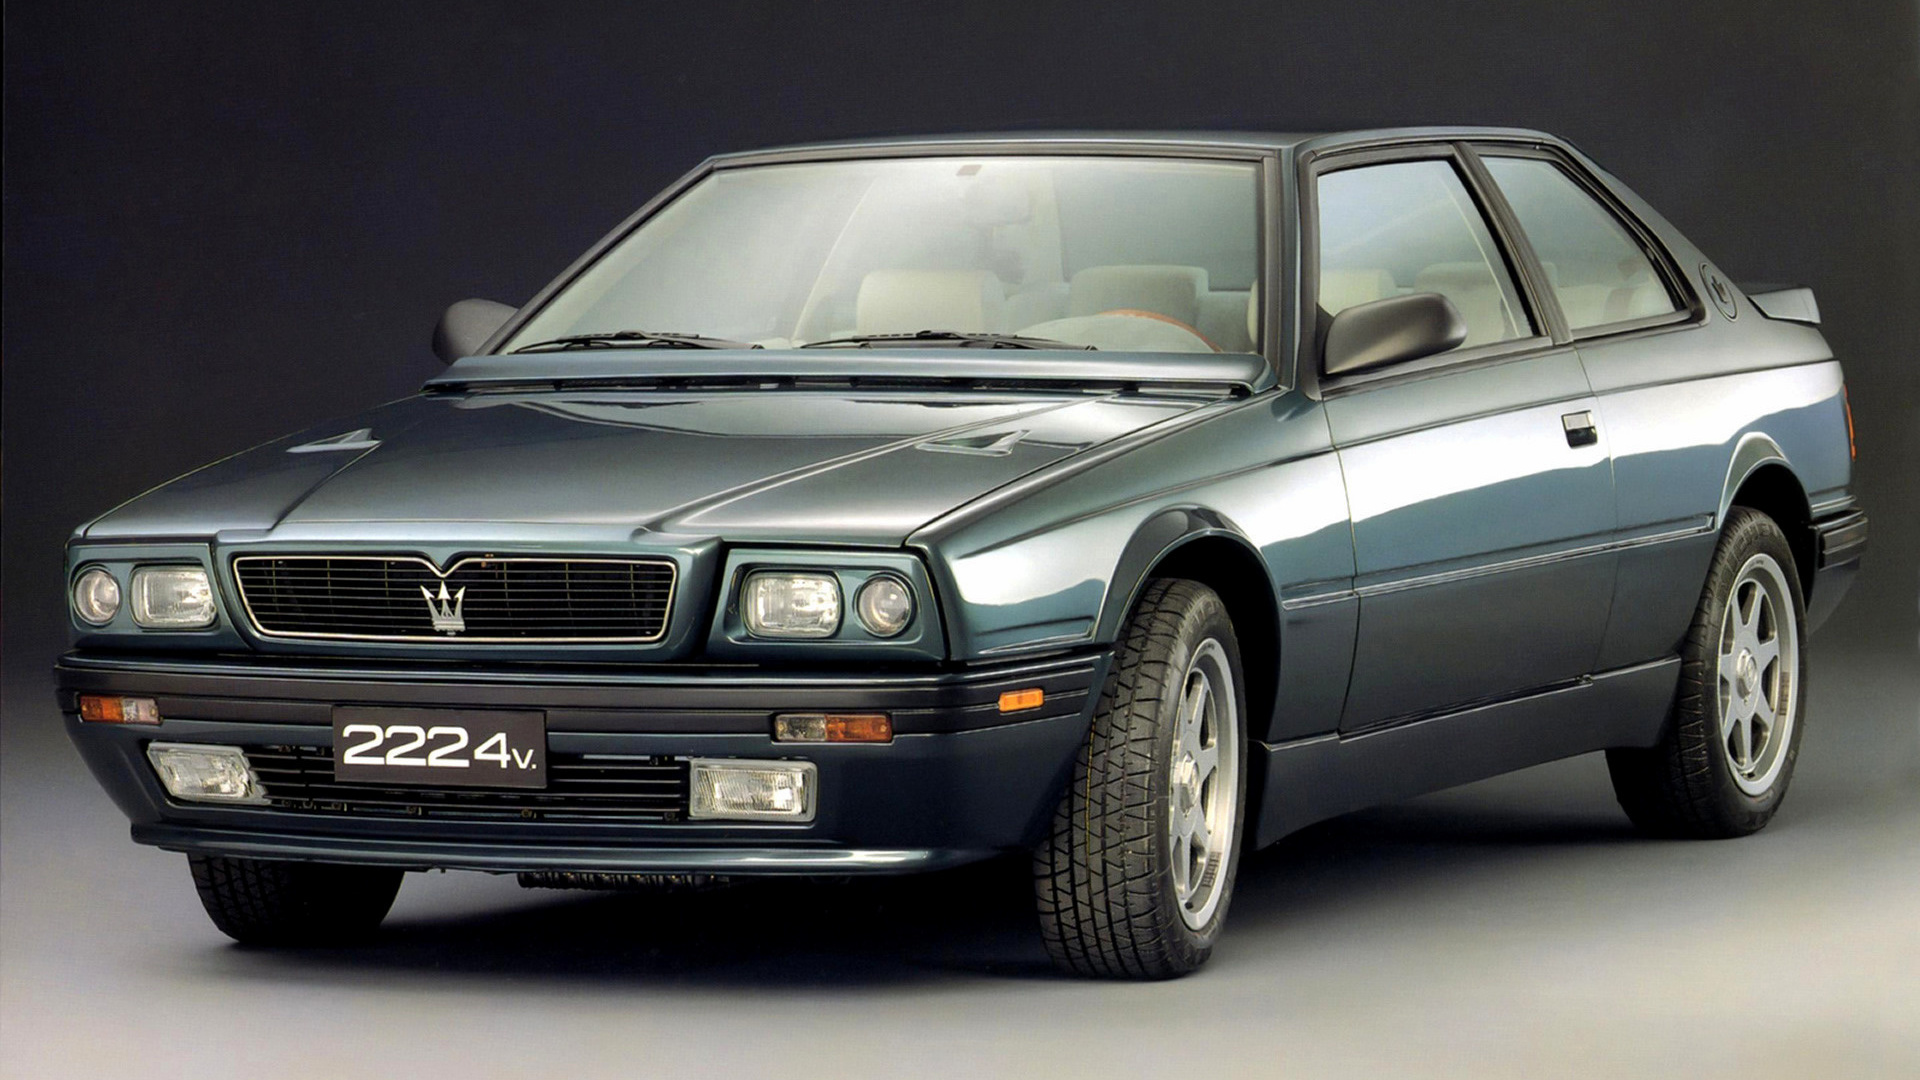 1991 Maserati 222 - Wallpapers and HD Images   Car Pixel